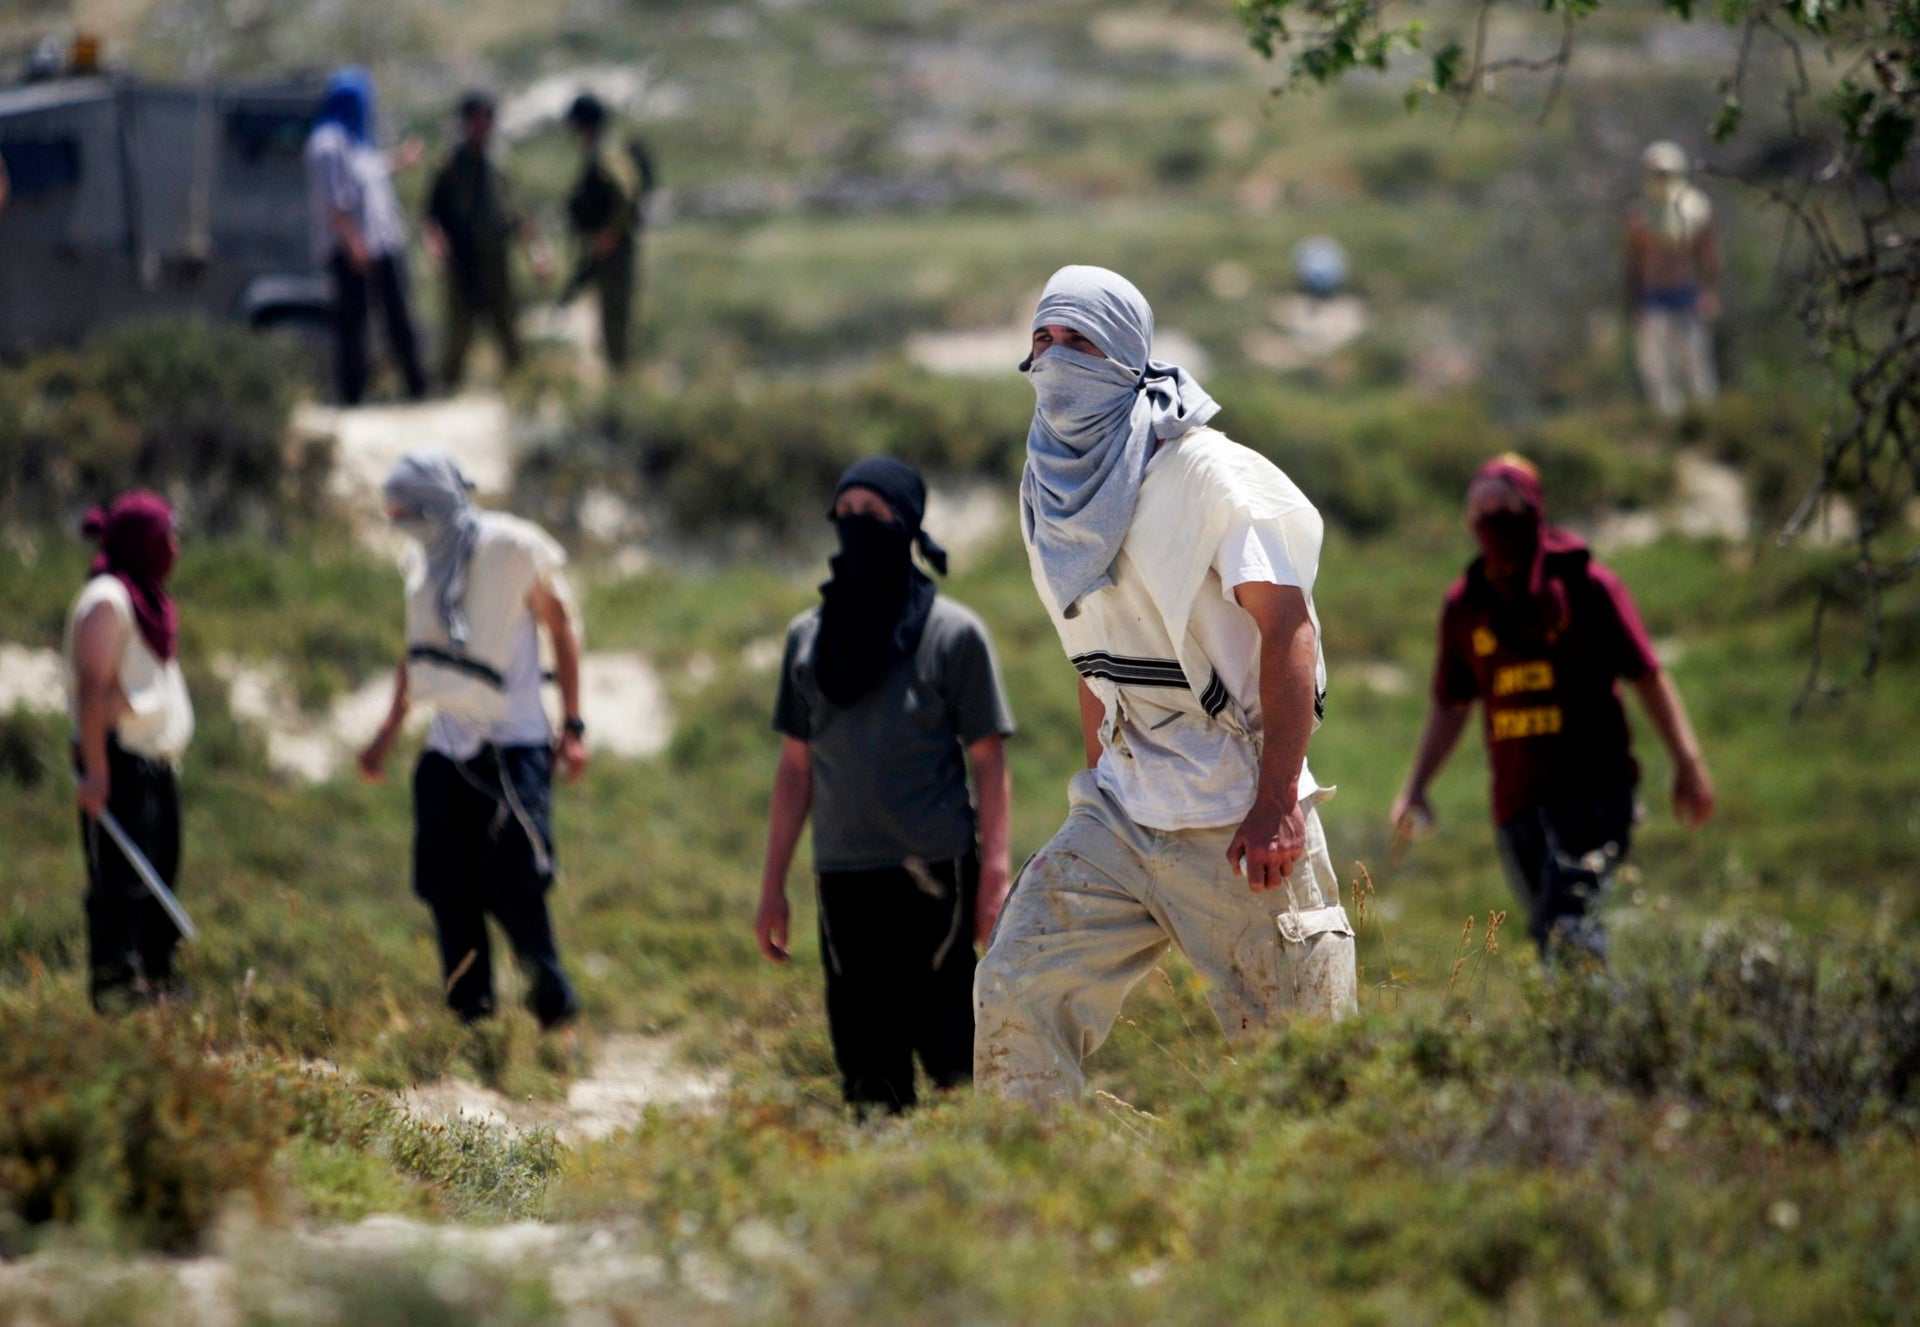 Jewish settlers throw rocks at Palestinians during clashes near the Jewish settlement of Yitzhar.